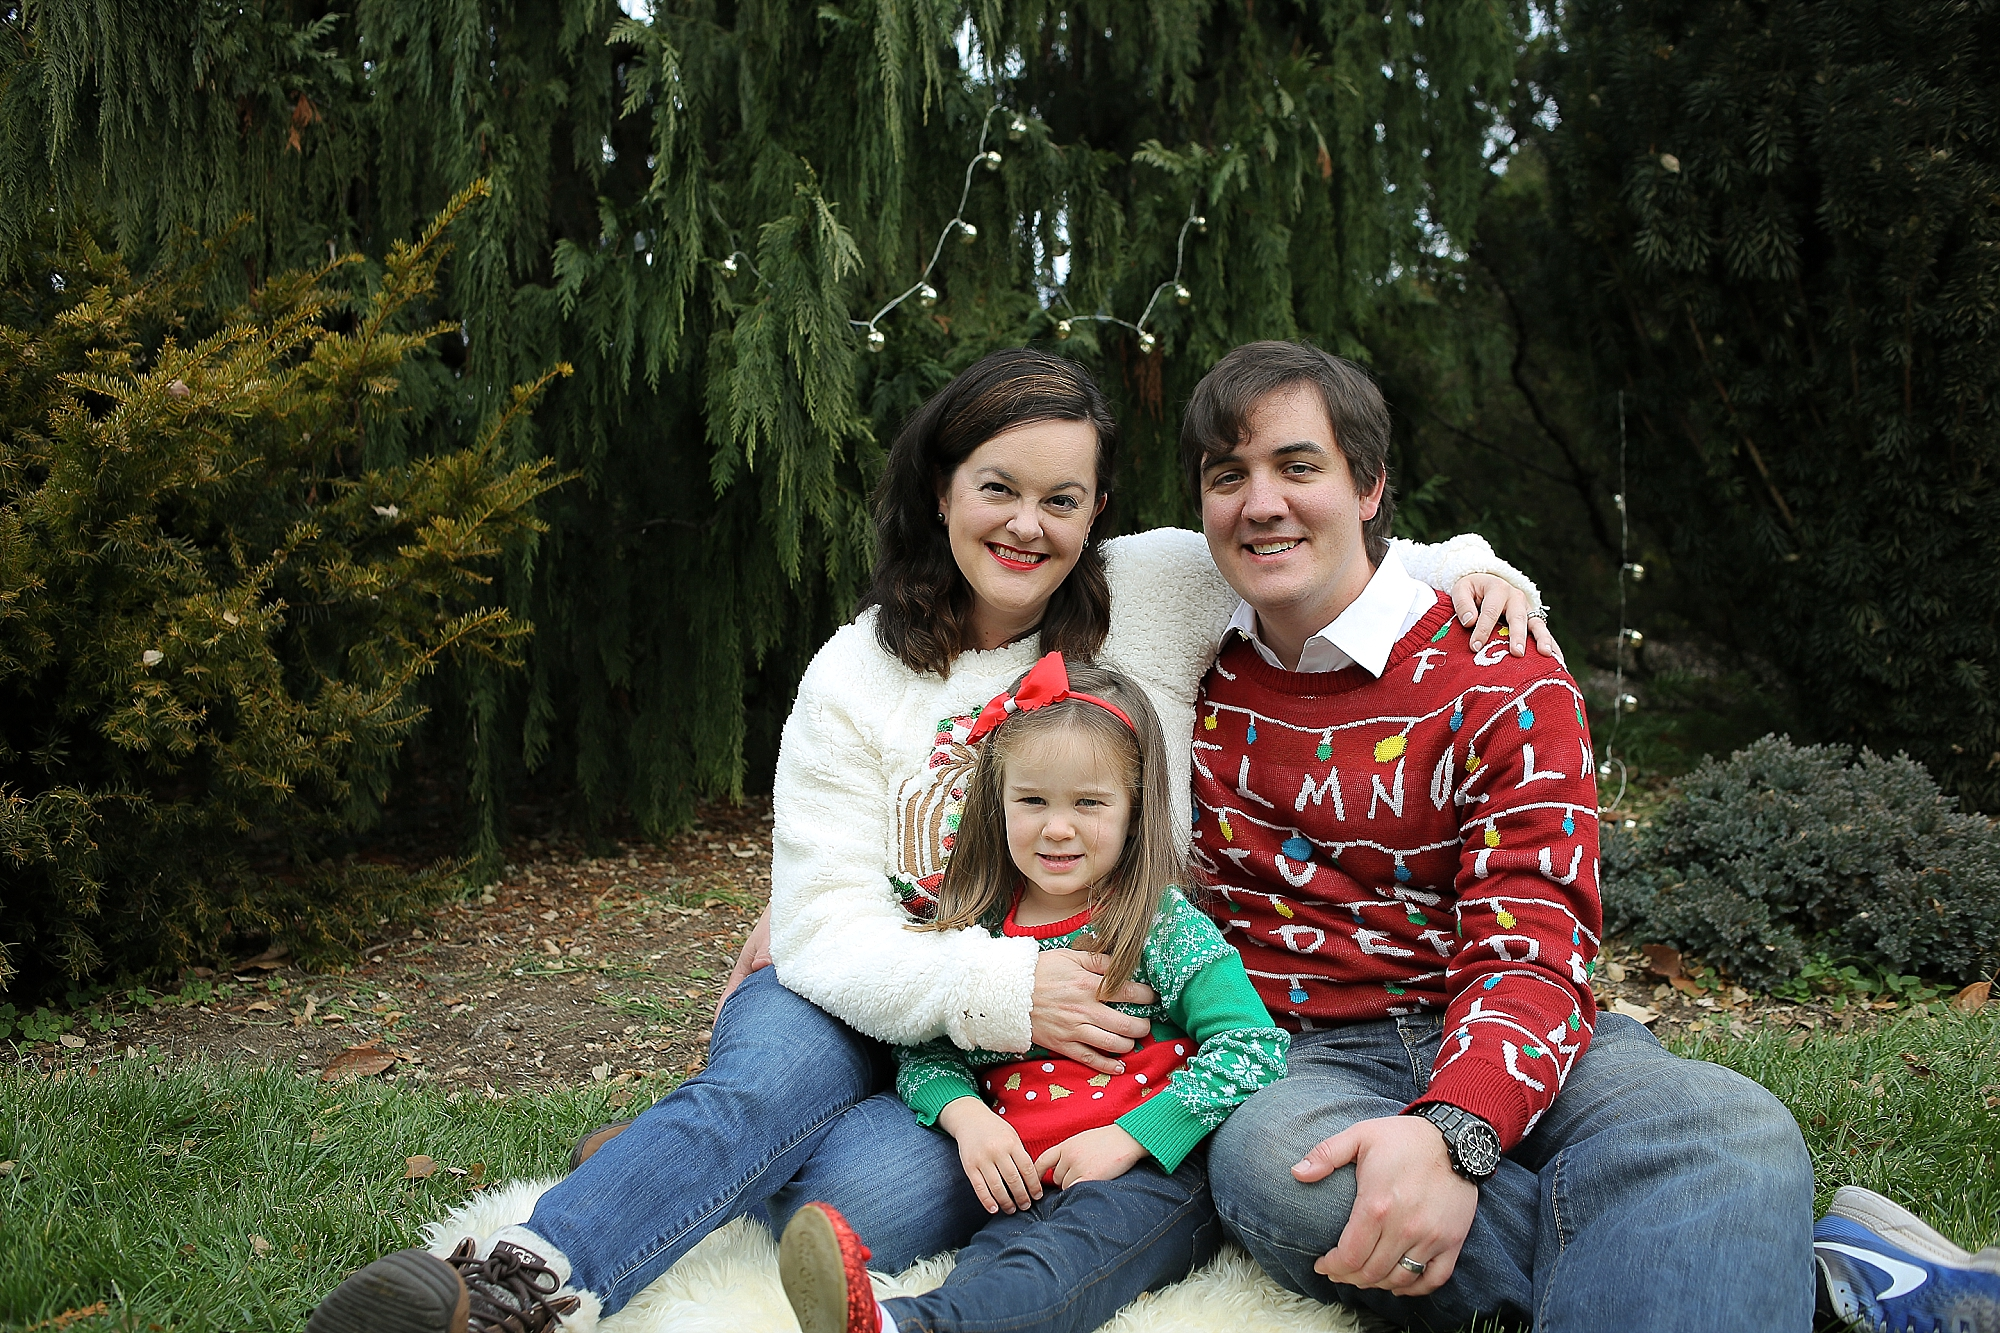 Blacksburg-Christmas-Card-Portrait-Photographer_0016.jpg